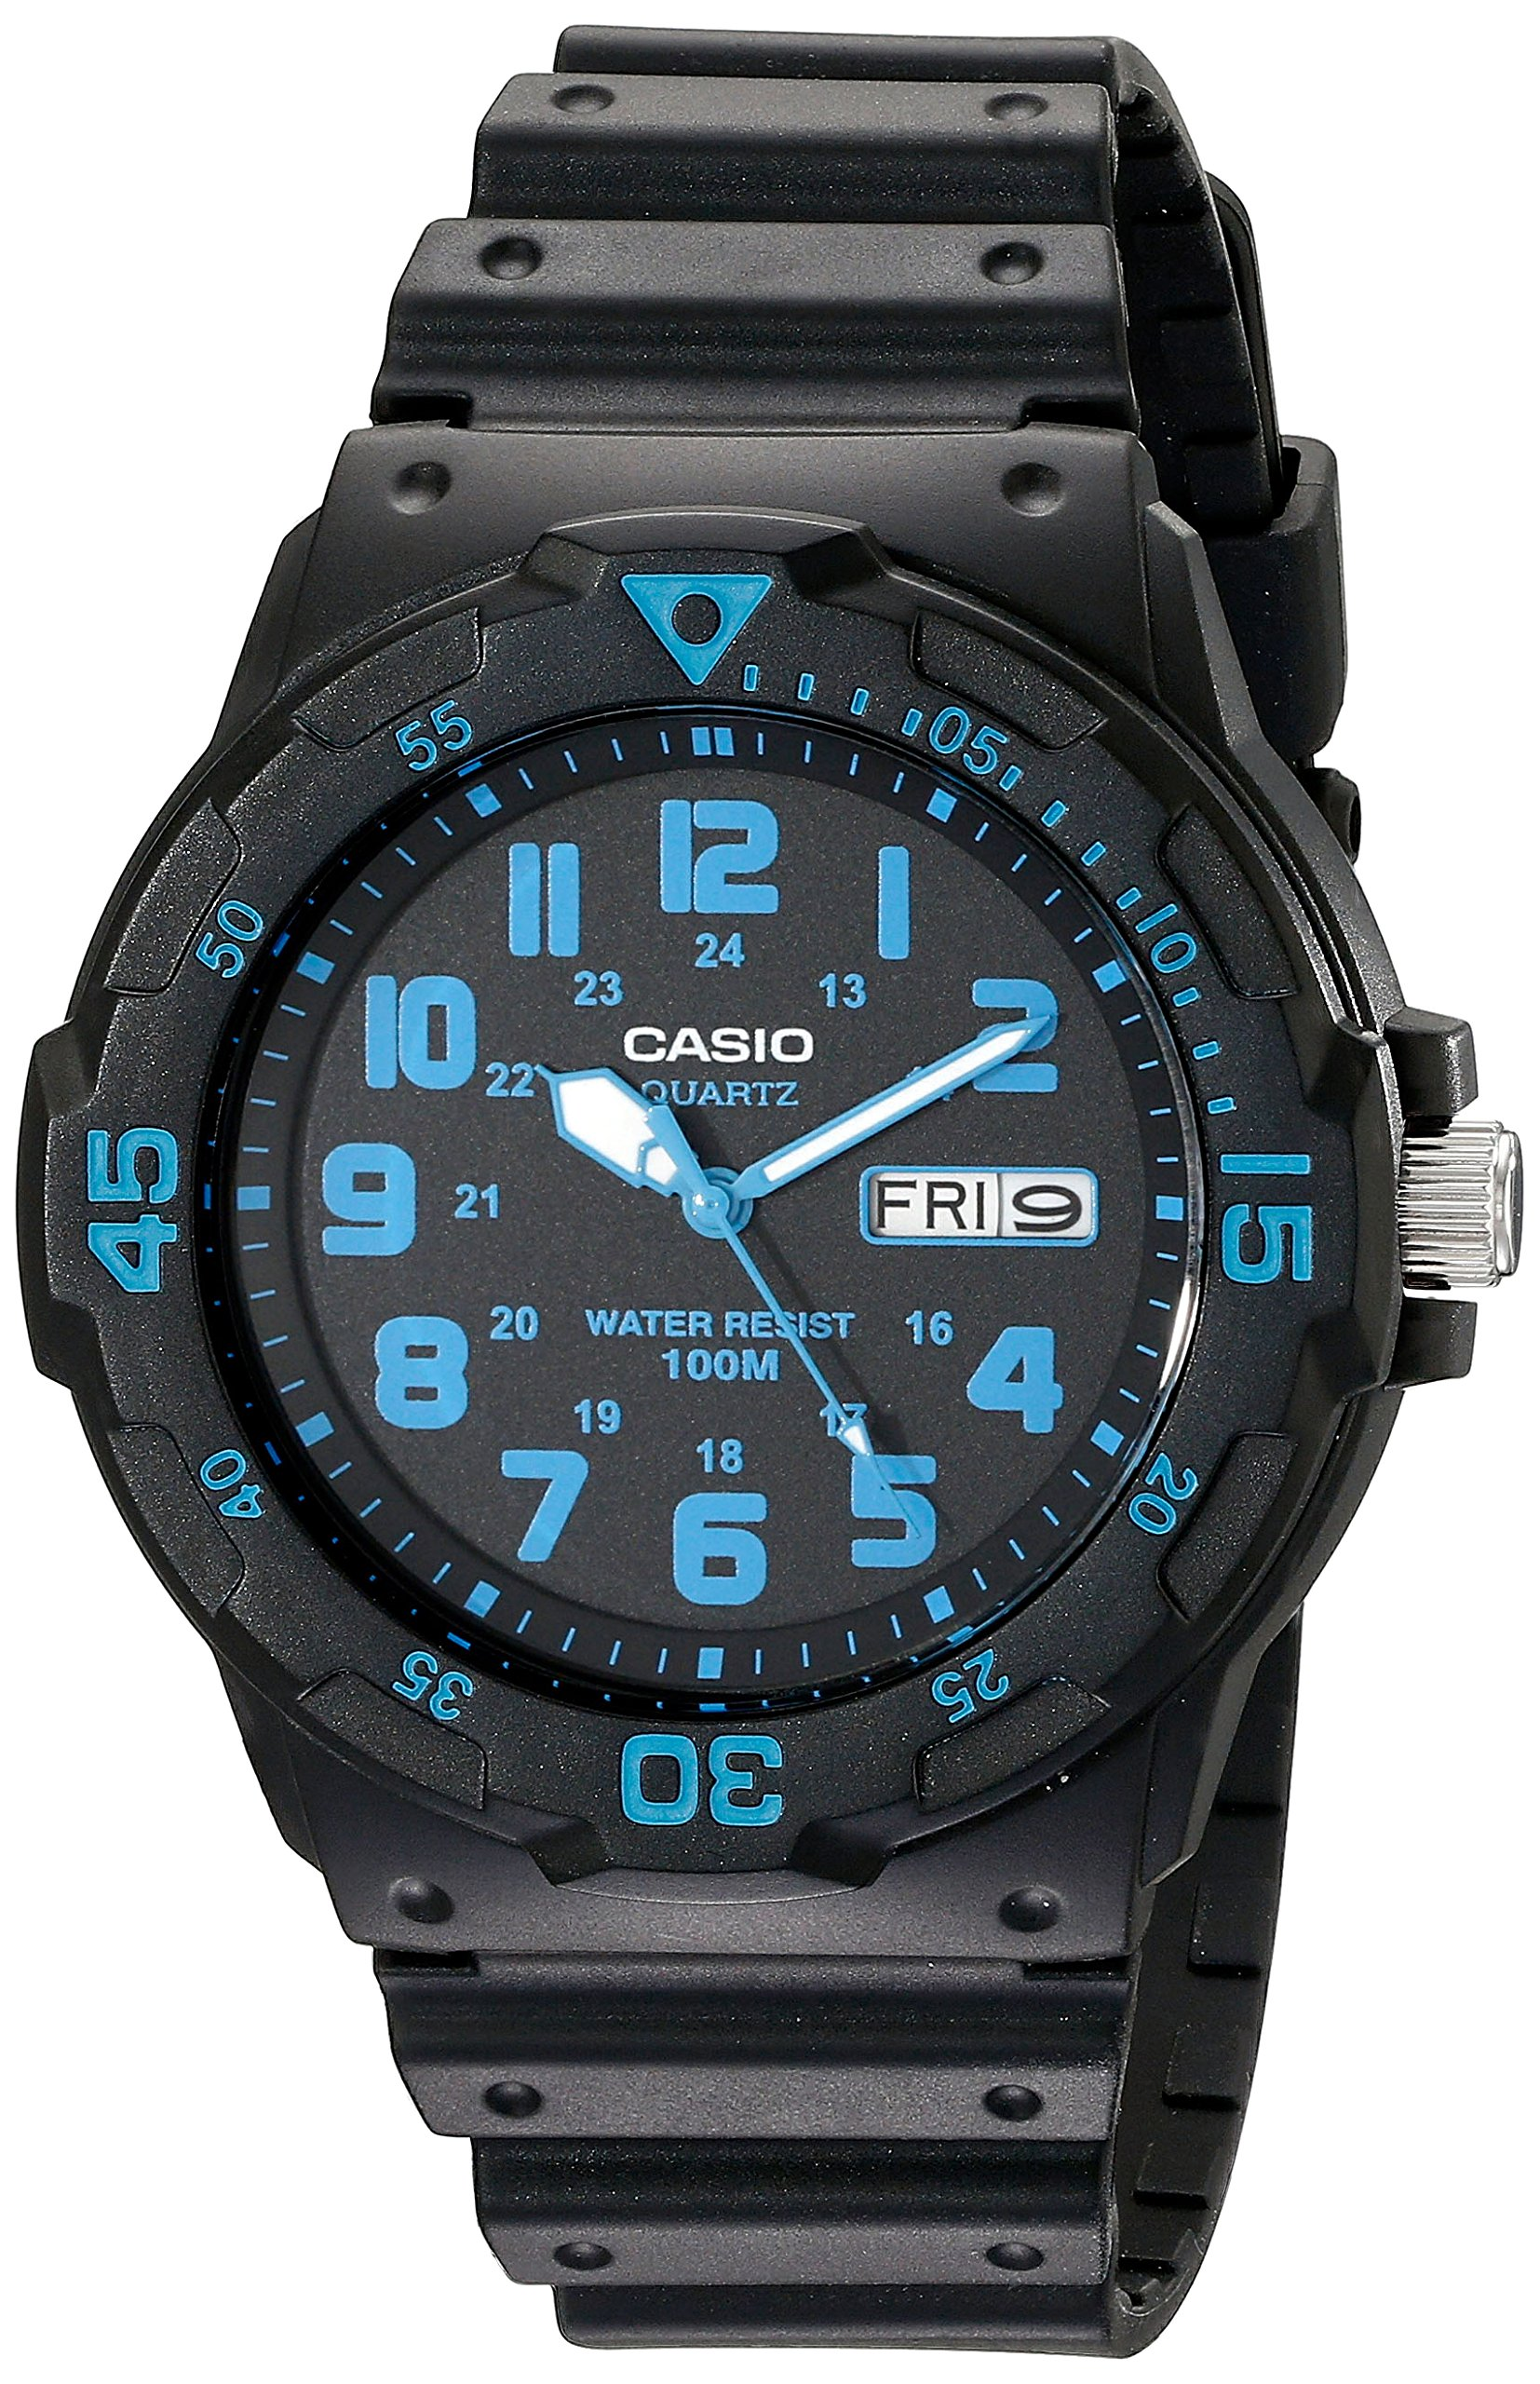 Casio Unisex MRW200H-2BV Neo-Display Black Watch with Resin Band by Casio (Image #1)